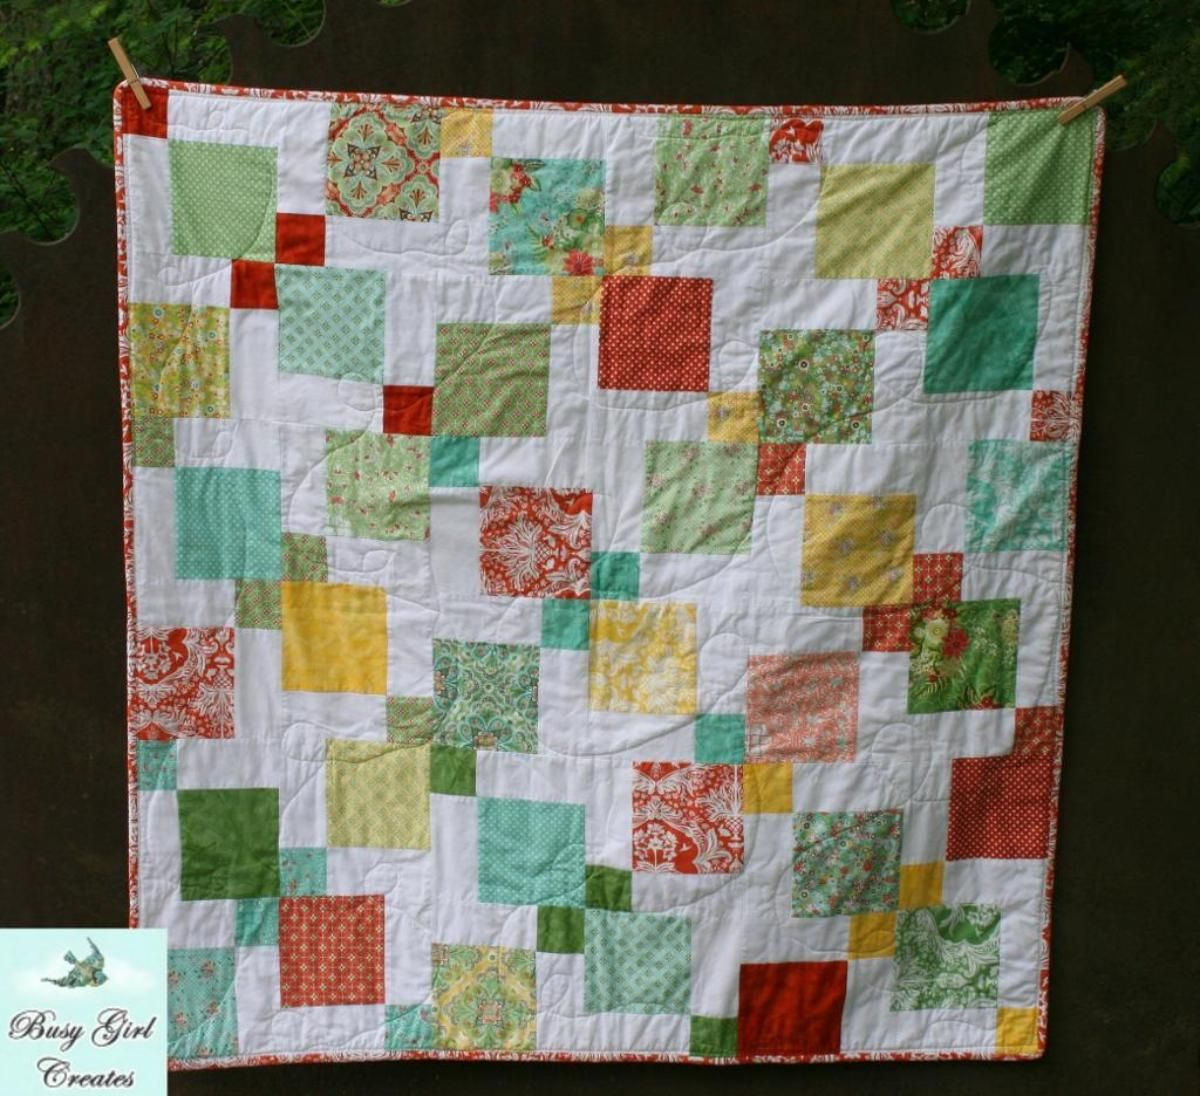 charms into four the or porch quilt packs flower hexi mini cover on takes charm fourths this pack challenge happy cut pattern moose flowers one